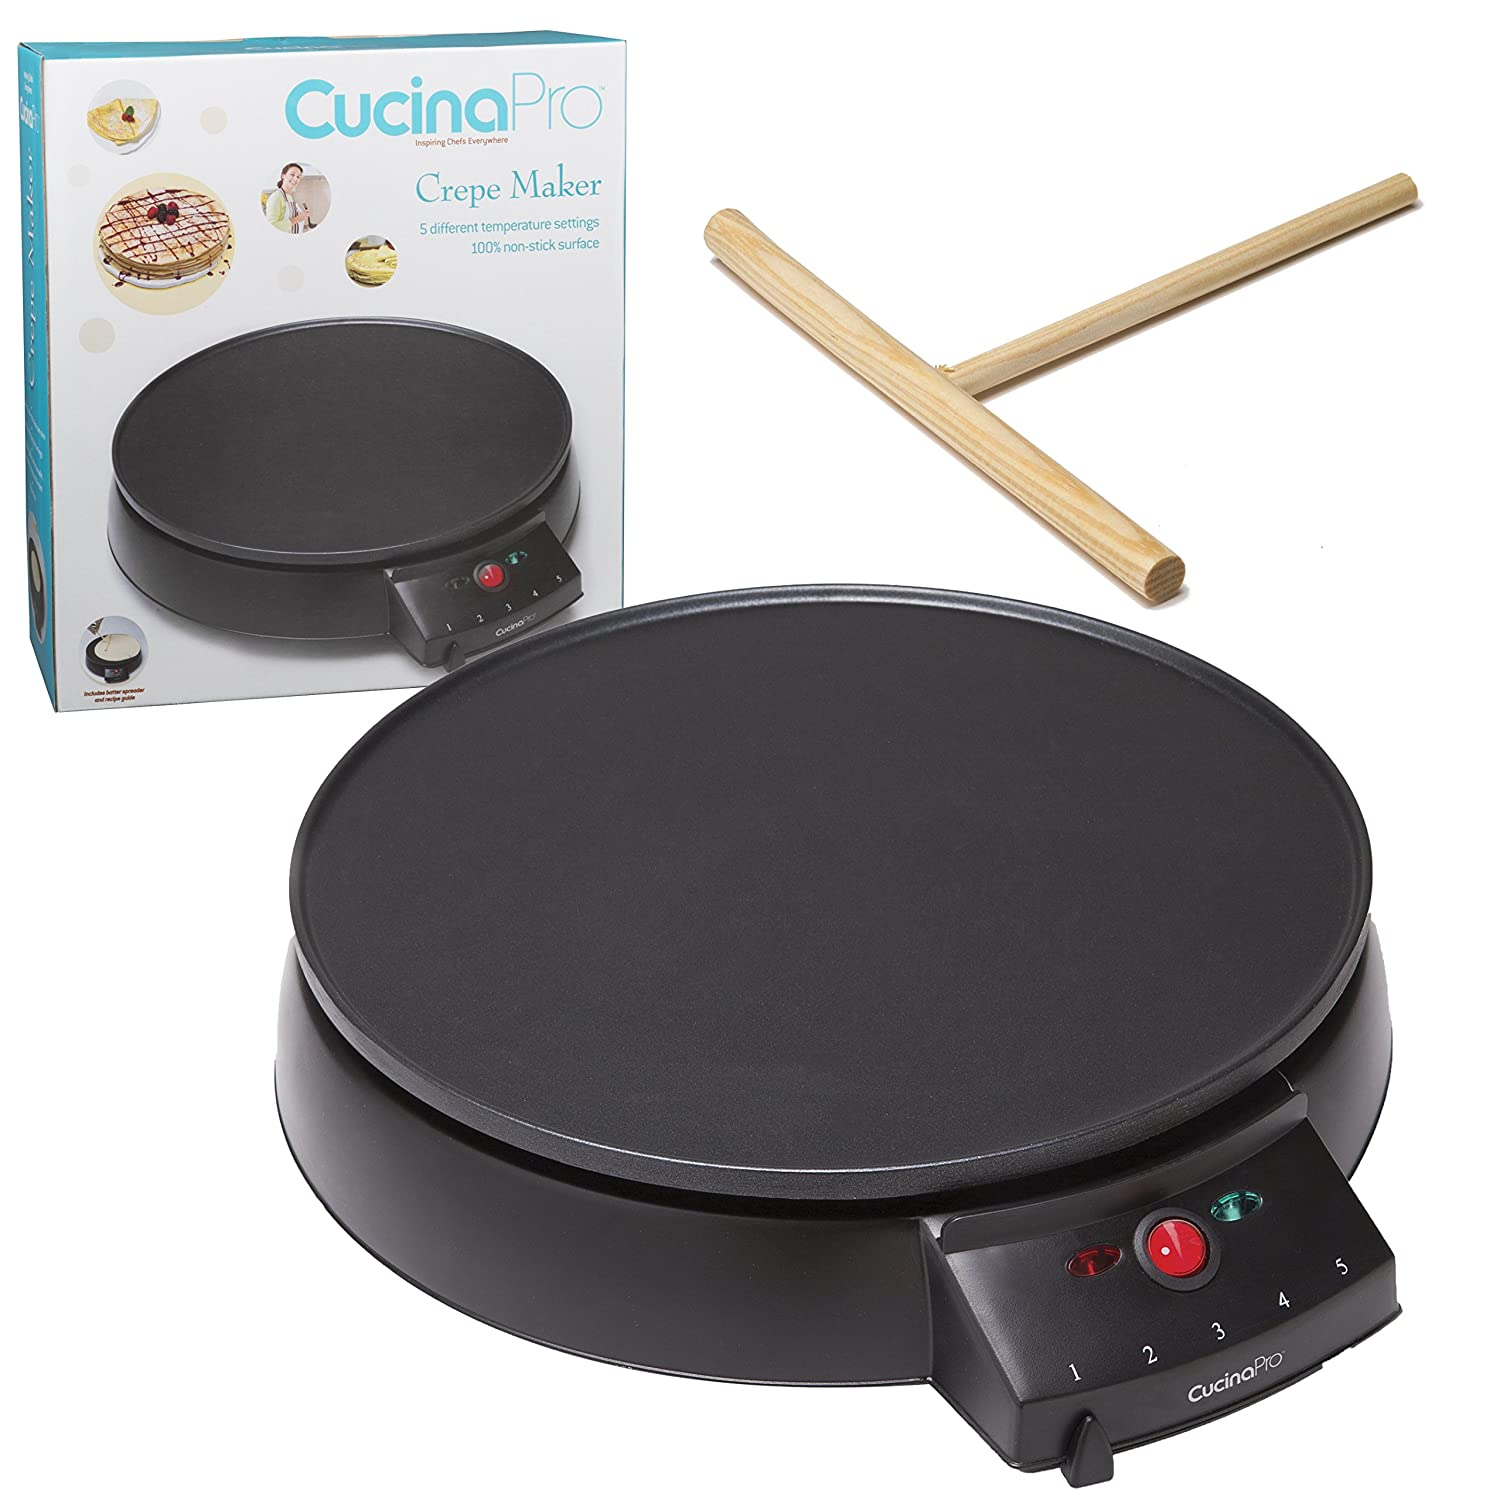 Cucina Pro Crepe Maker and Non-stick 12-inch Griddle